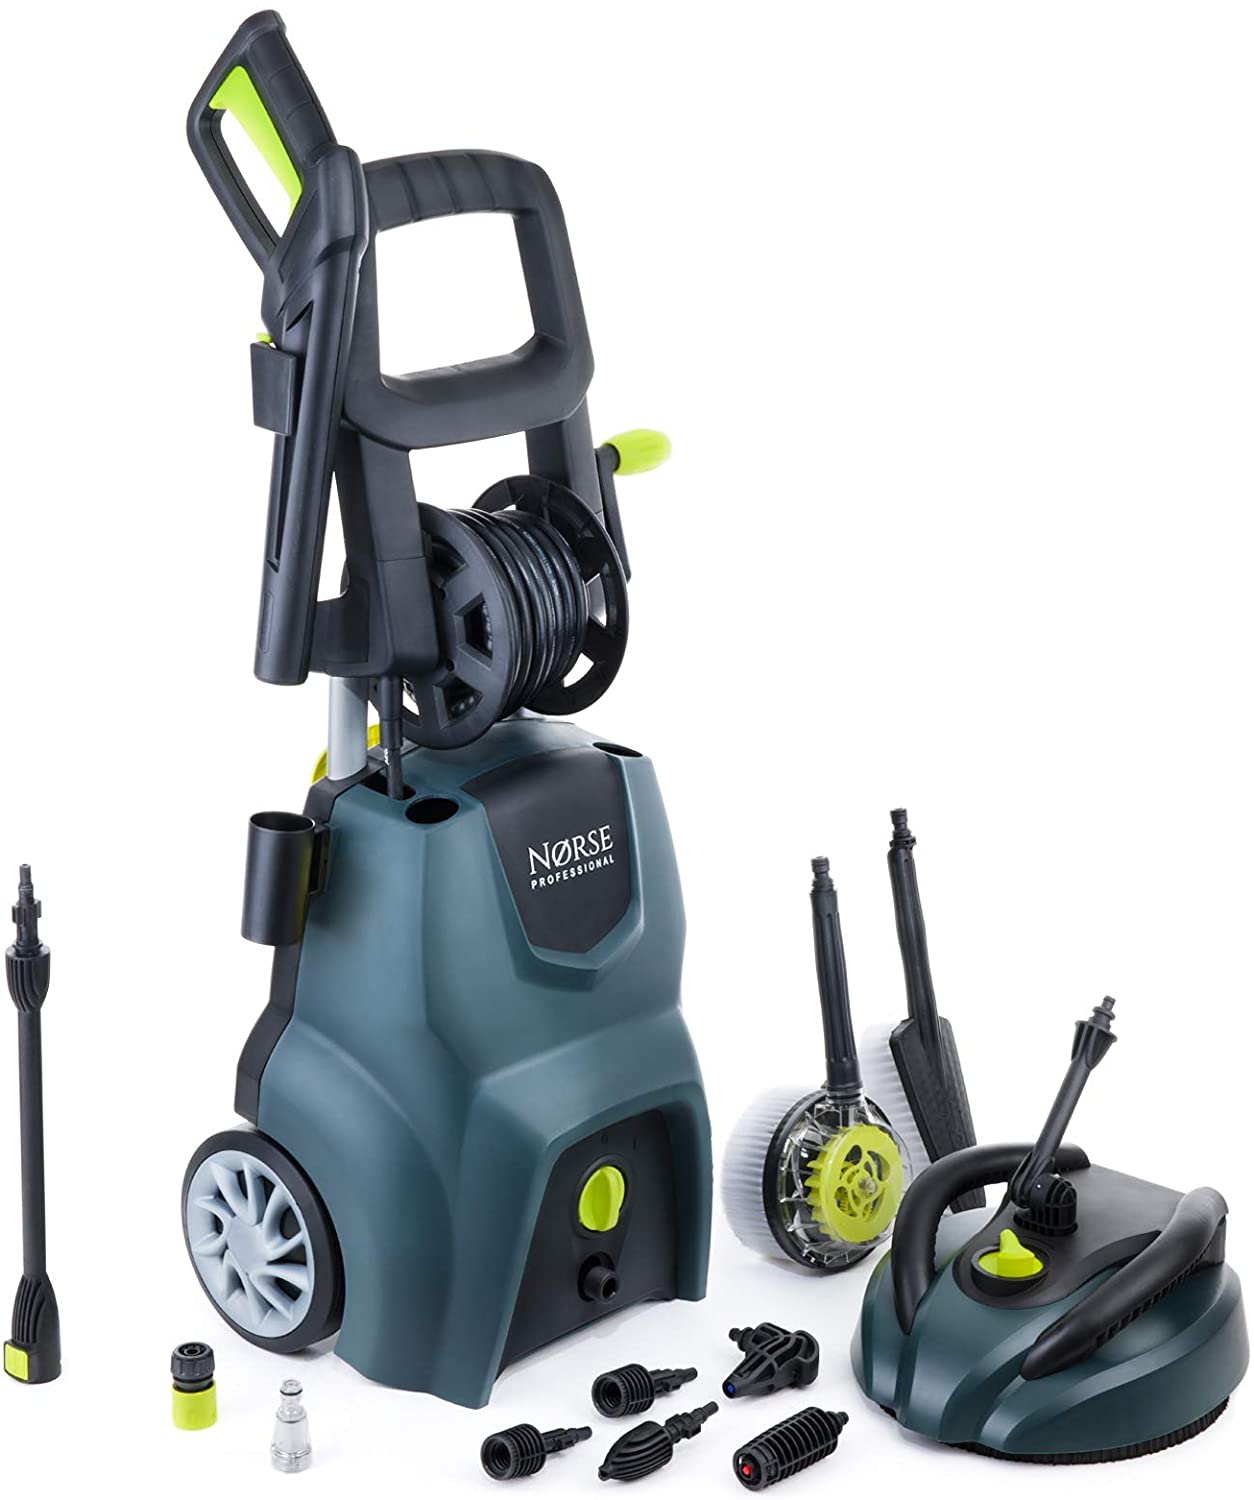 norse sk135 electric pressure washer